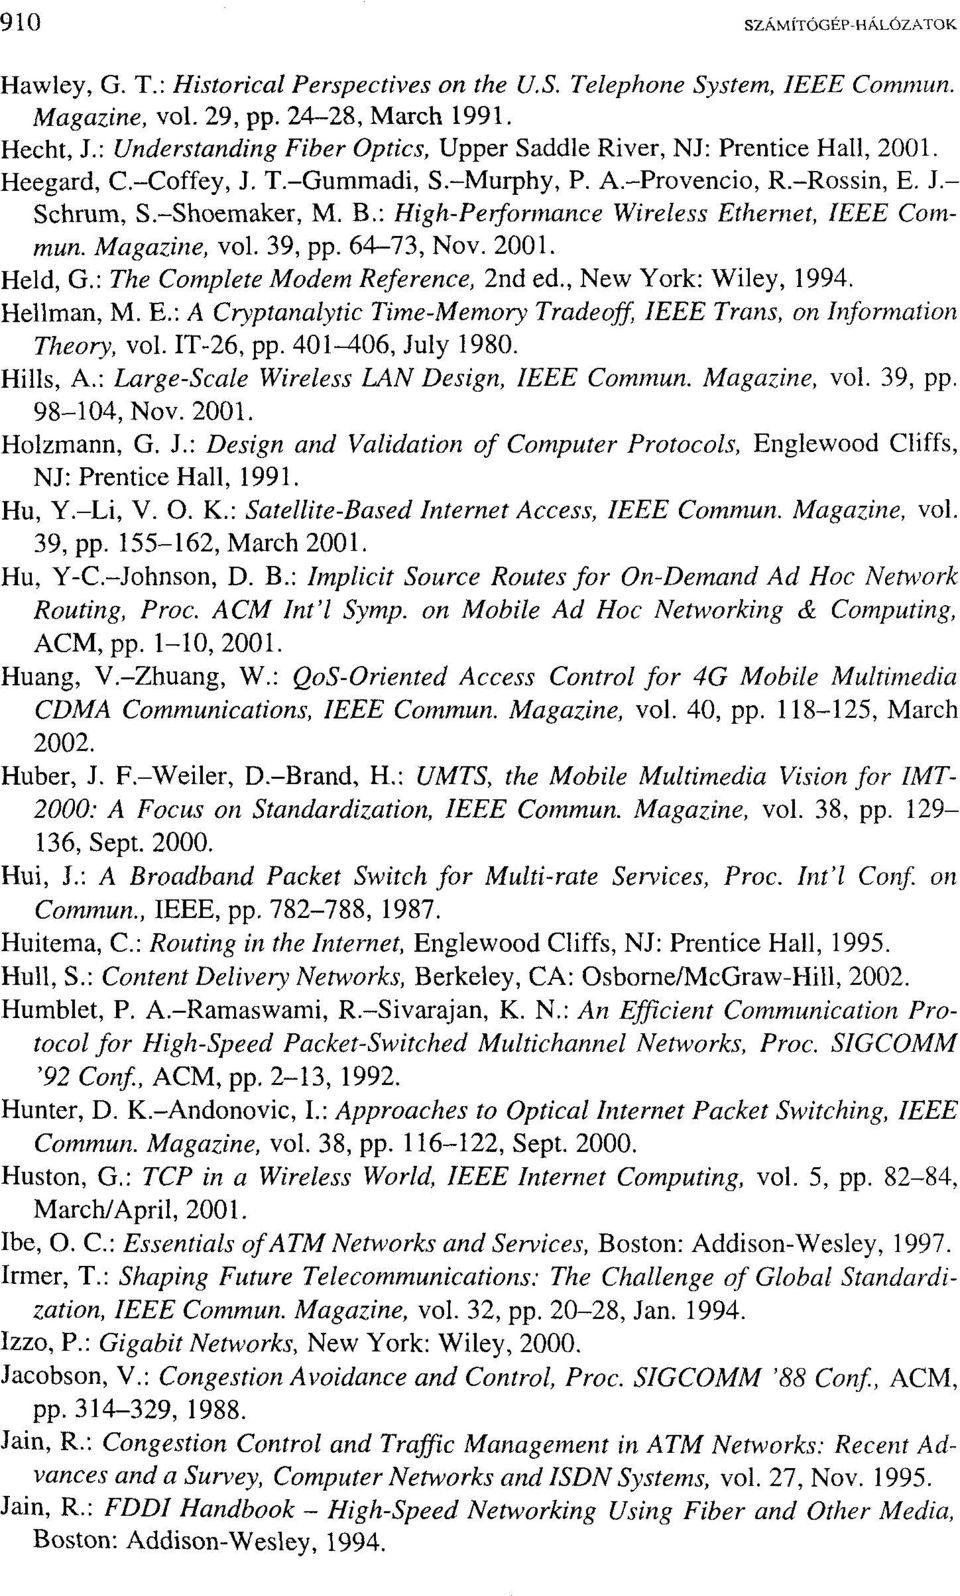 : High-Performance Wireless Ethernet, IEEE Commun. Magaziné, vol. 39, pp. 64-73, Nov. 2001. Held, G.: The Complete Modem Reference, 2nd ed., New York: Wiley, 1994. Hellman, M. E.: A Cryptanalytíc Time-Memory Tradeoff, IEEE Trans, on Information Theory, vol.